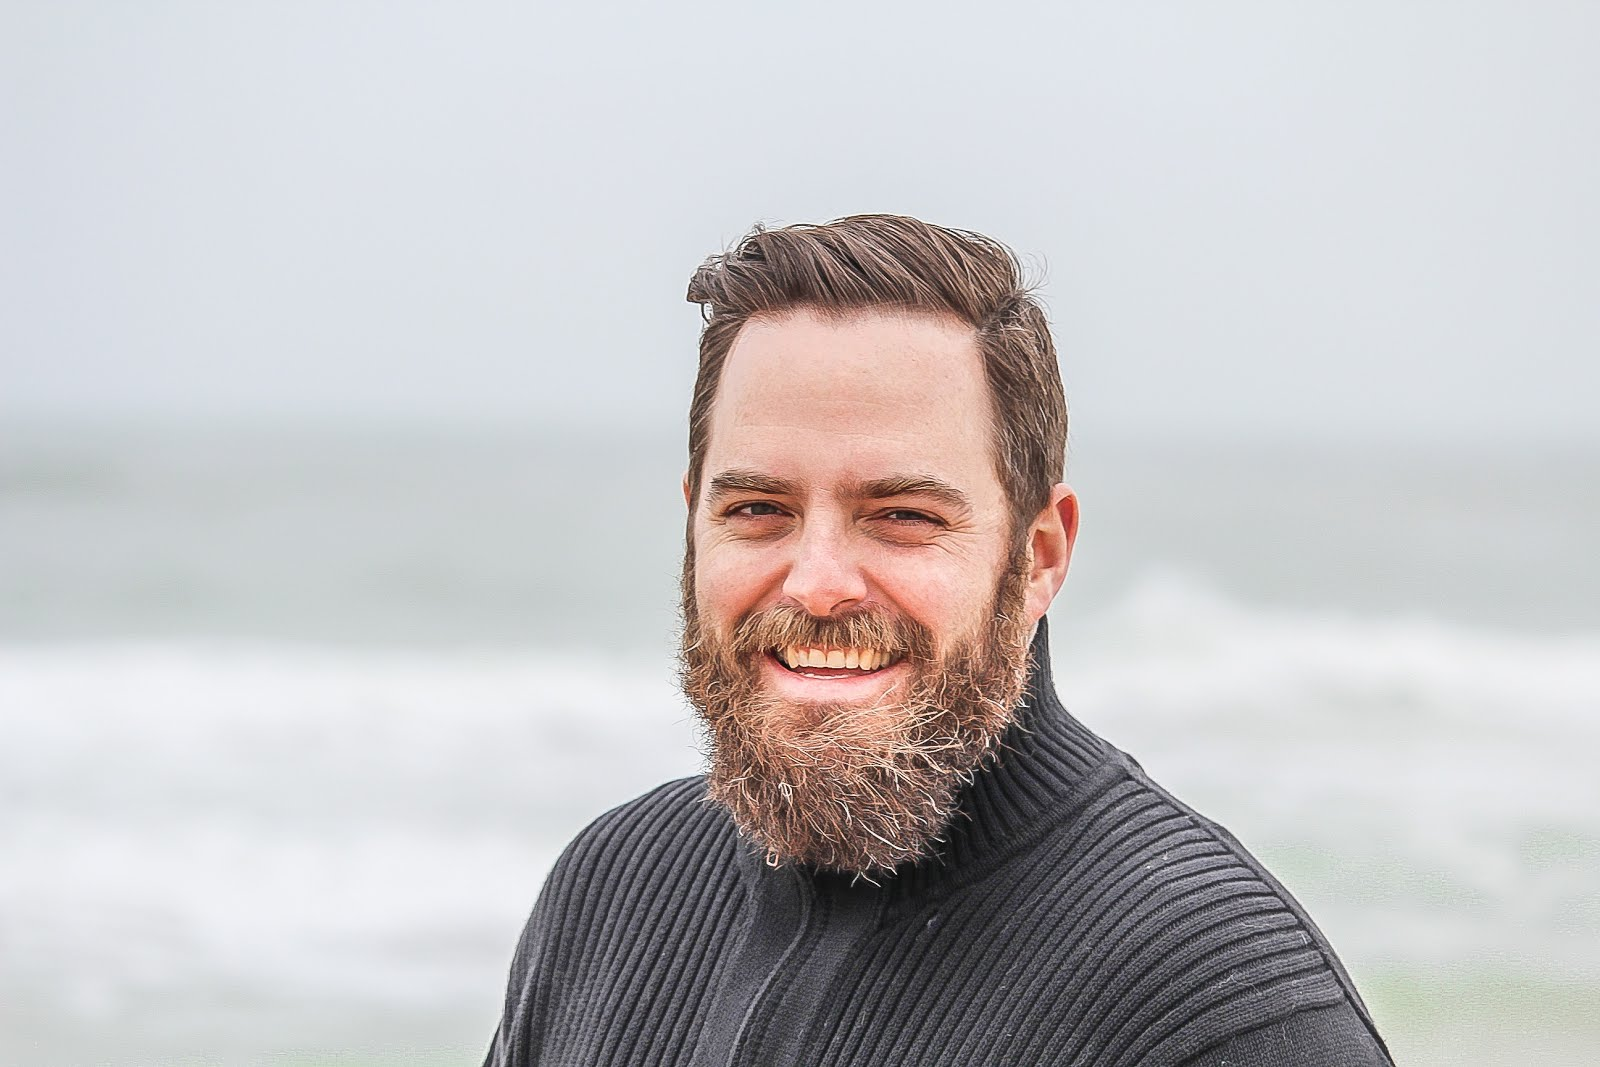 man wearing black zip up jacket near beach smiling at the photo